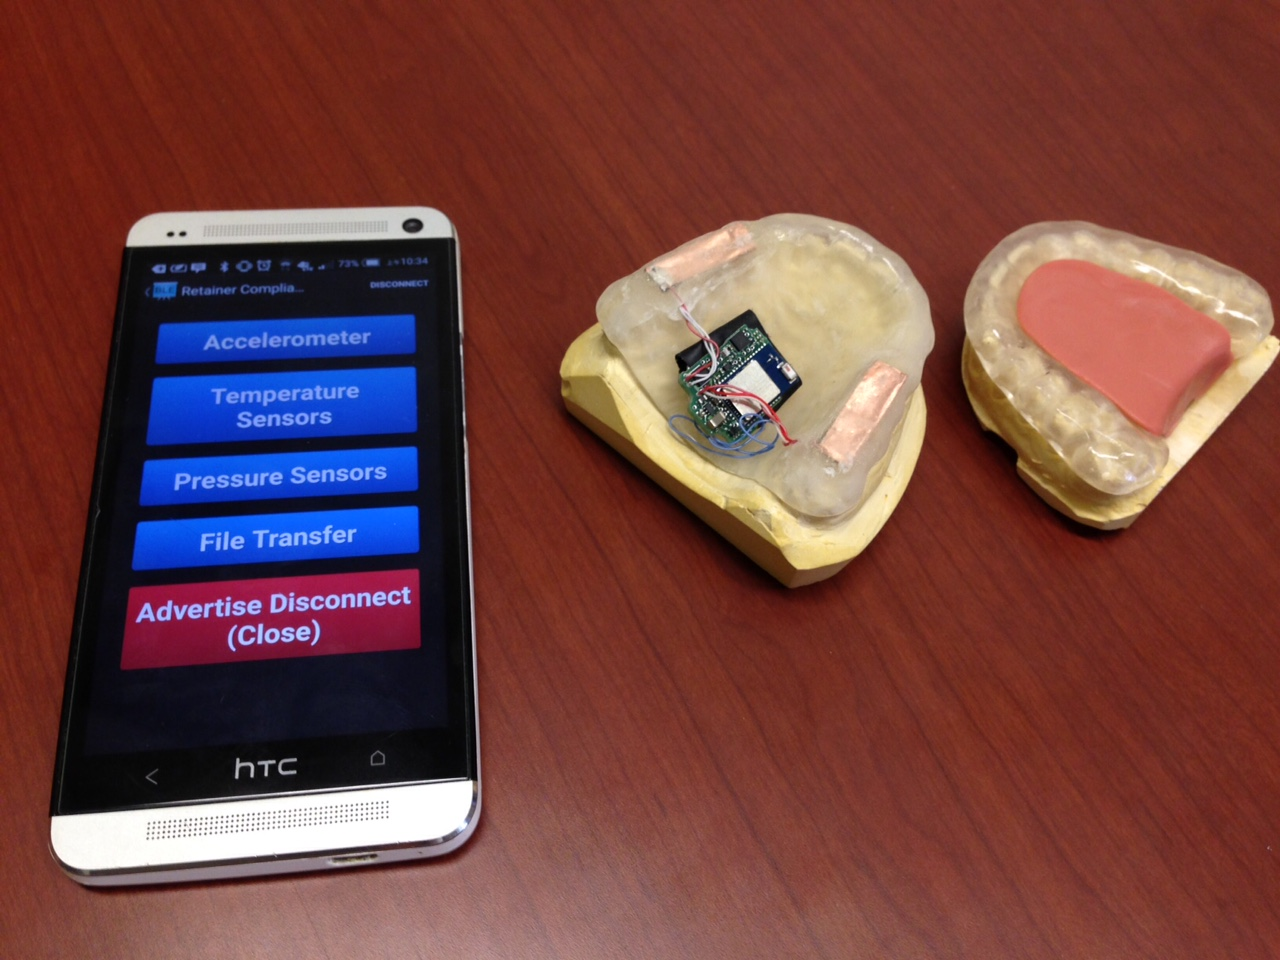 Smart mouth guard could detect teeth grinding, dehydration, concussions